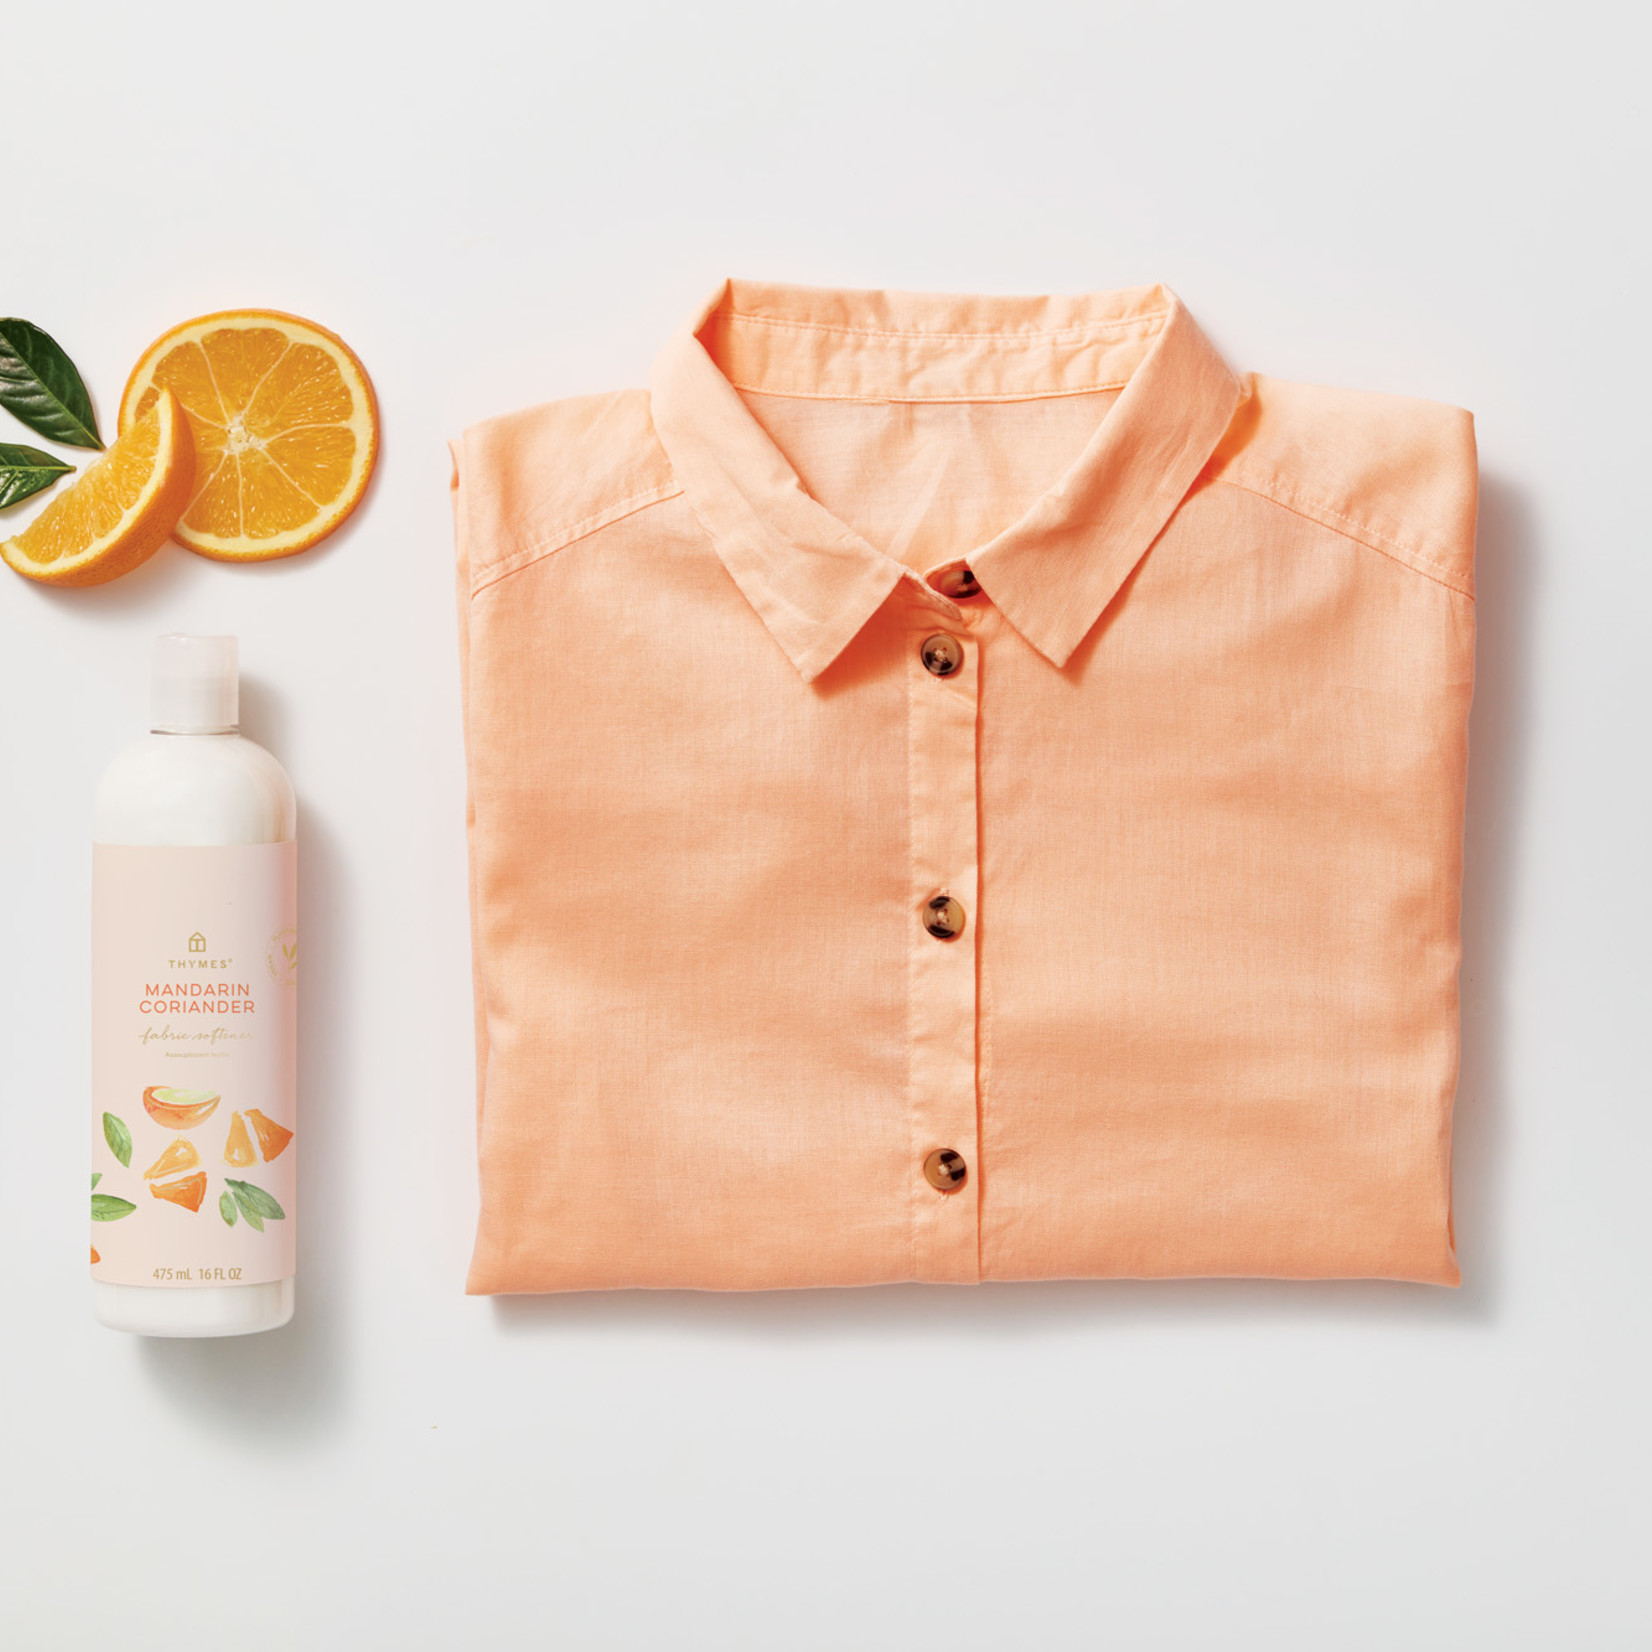 Thymes Fabric Softener